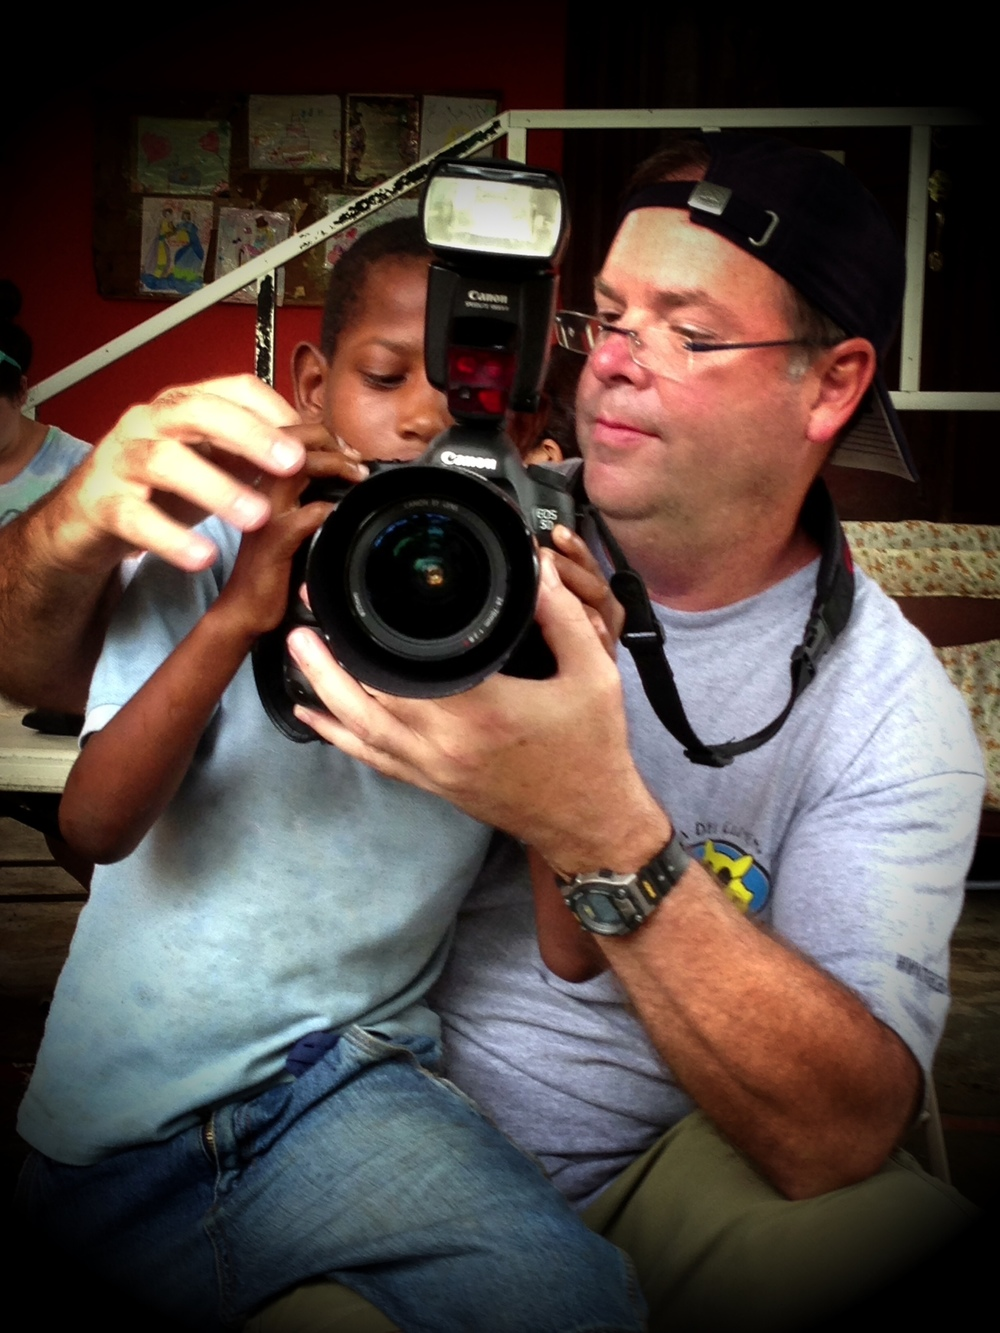 Introducing photography to kids on a youth mission trip to the Dominican Republic.